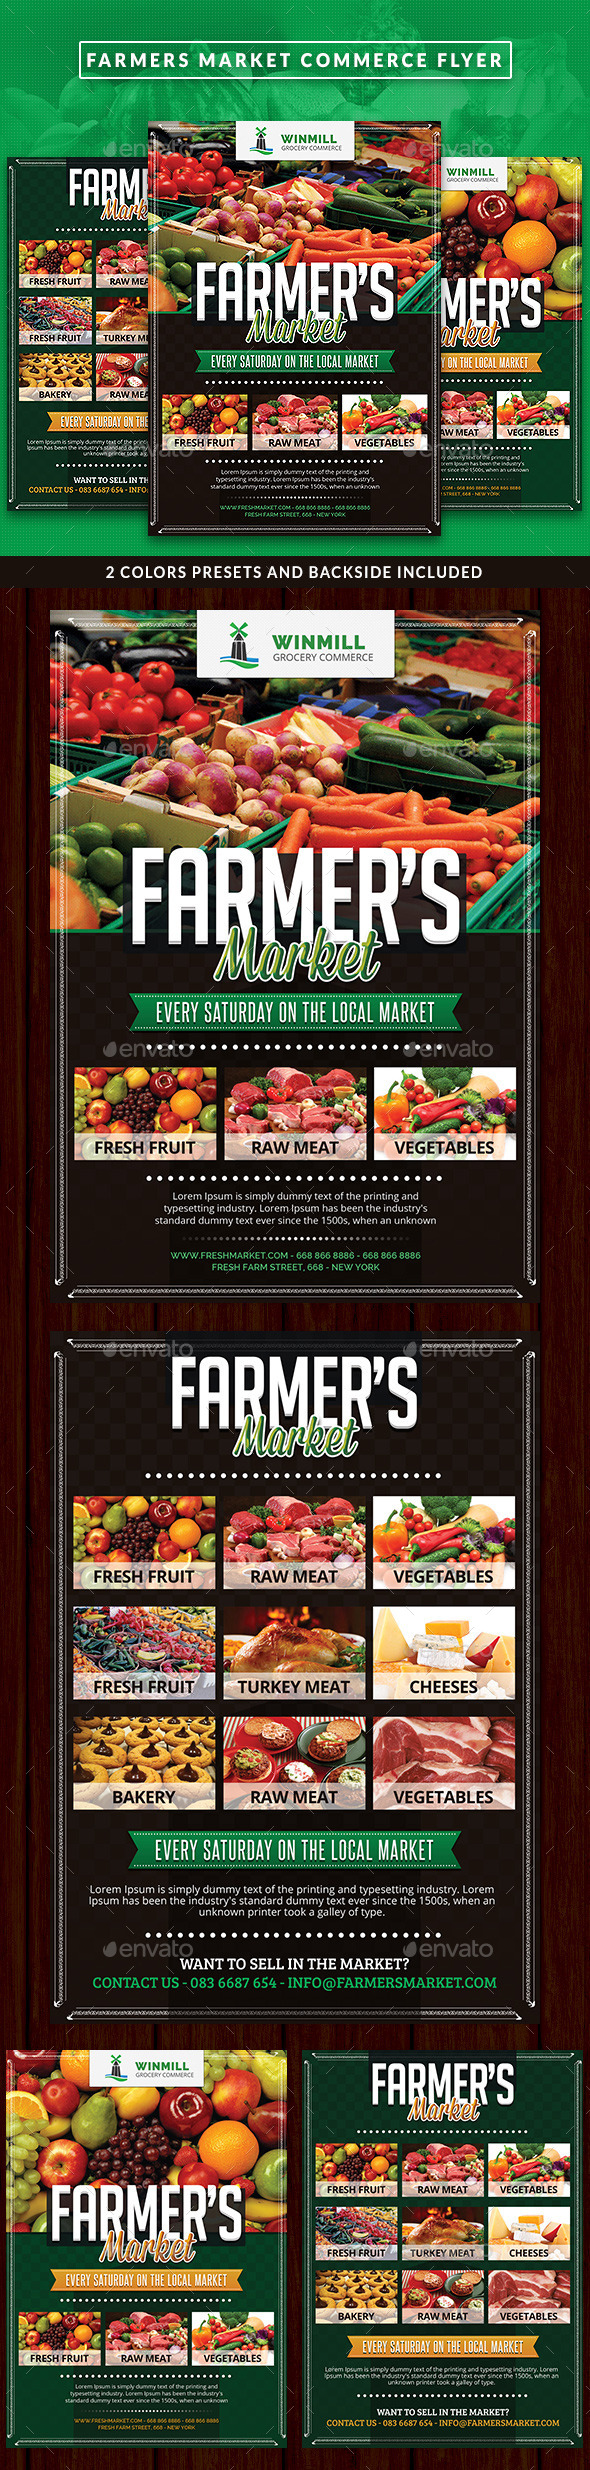 Farmer's Market Commerce Flyer - Commerce Flyers